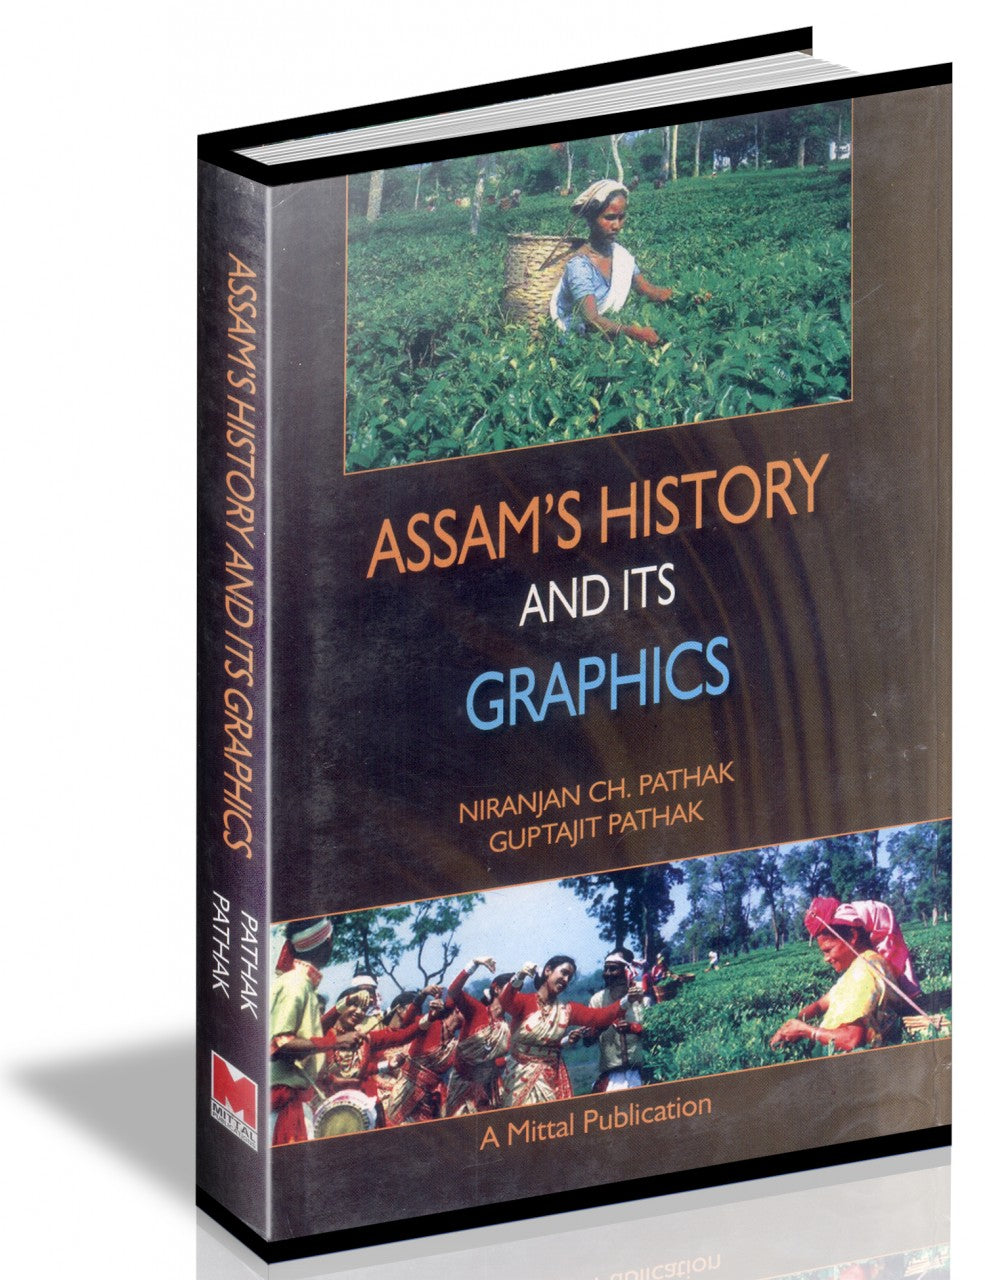 Assam's History and its Graphics